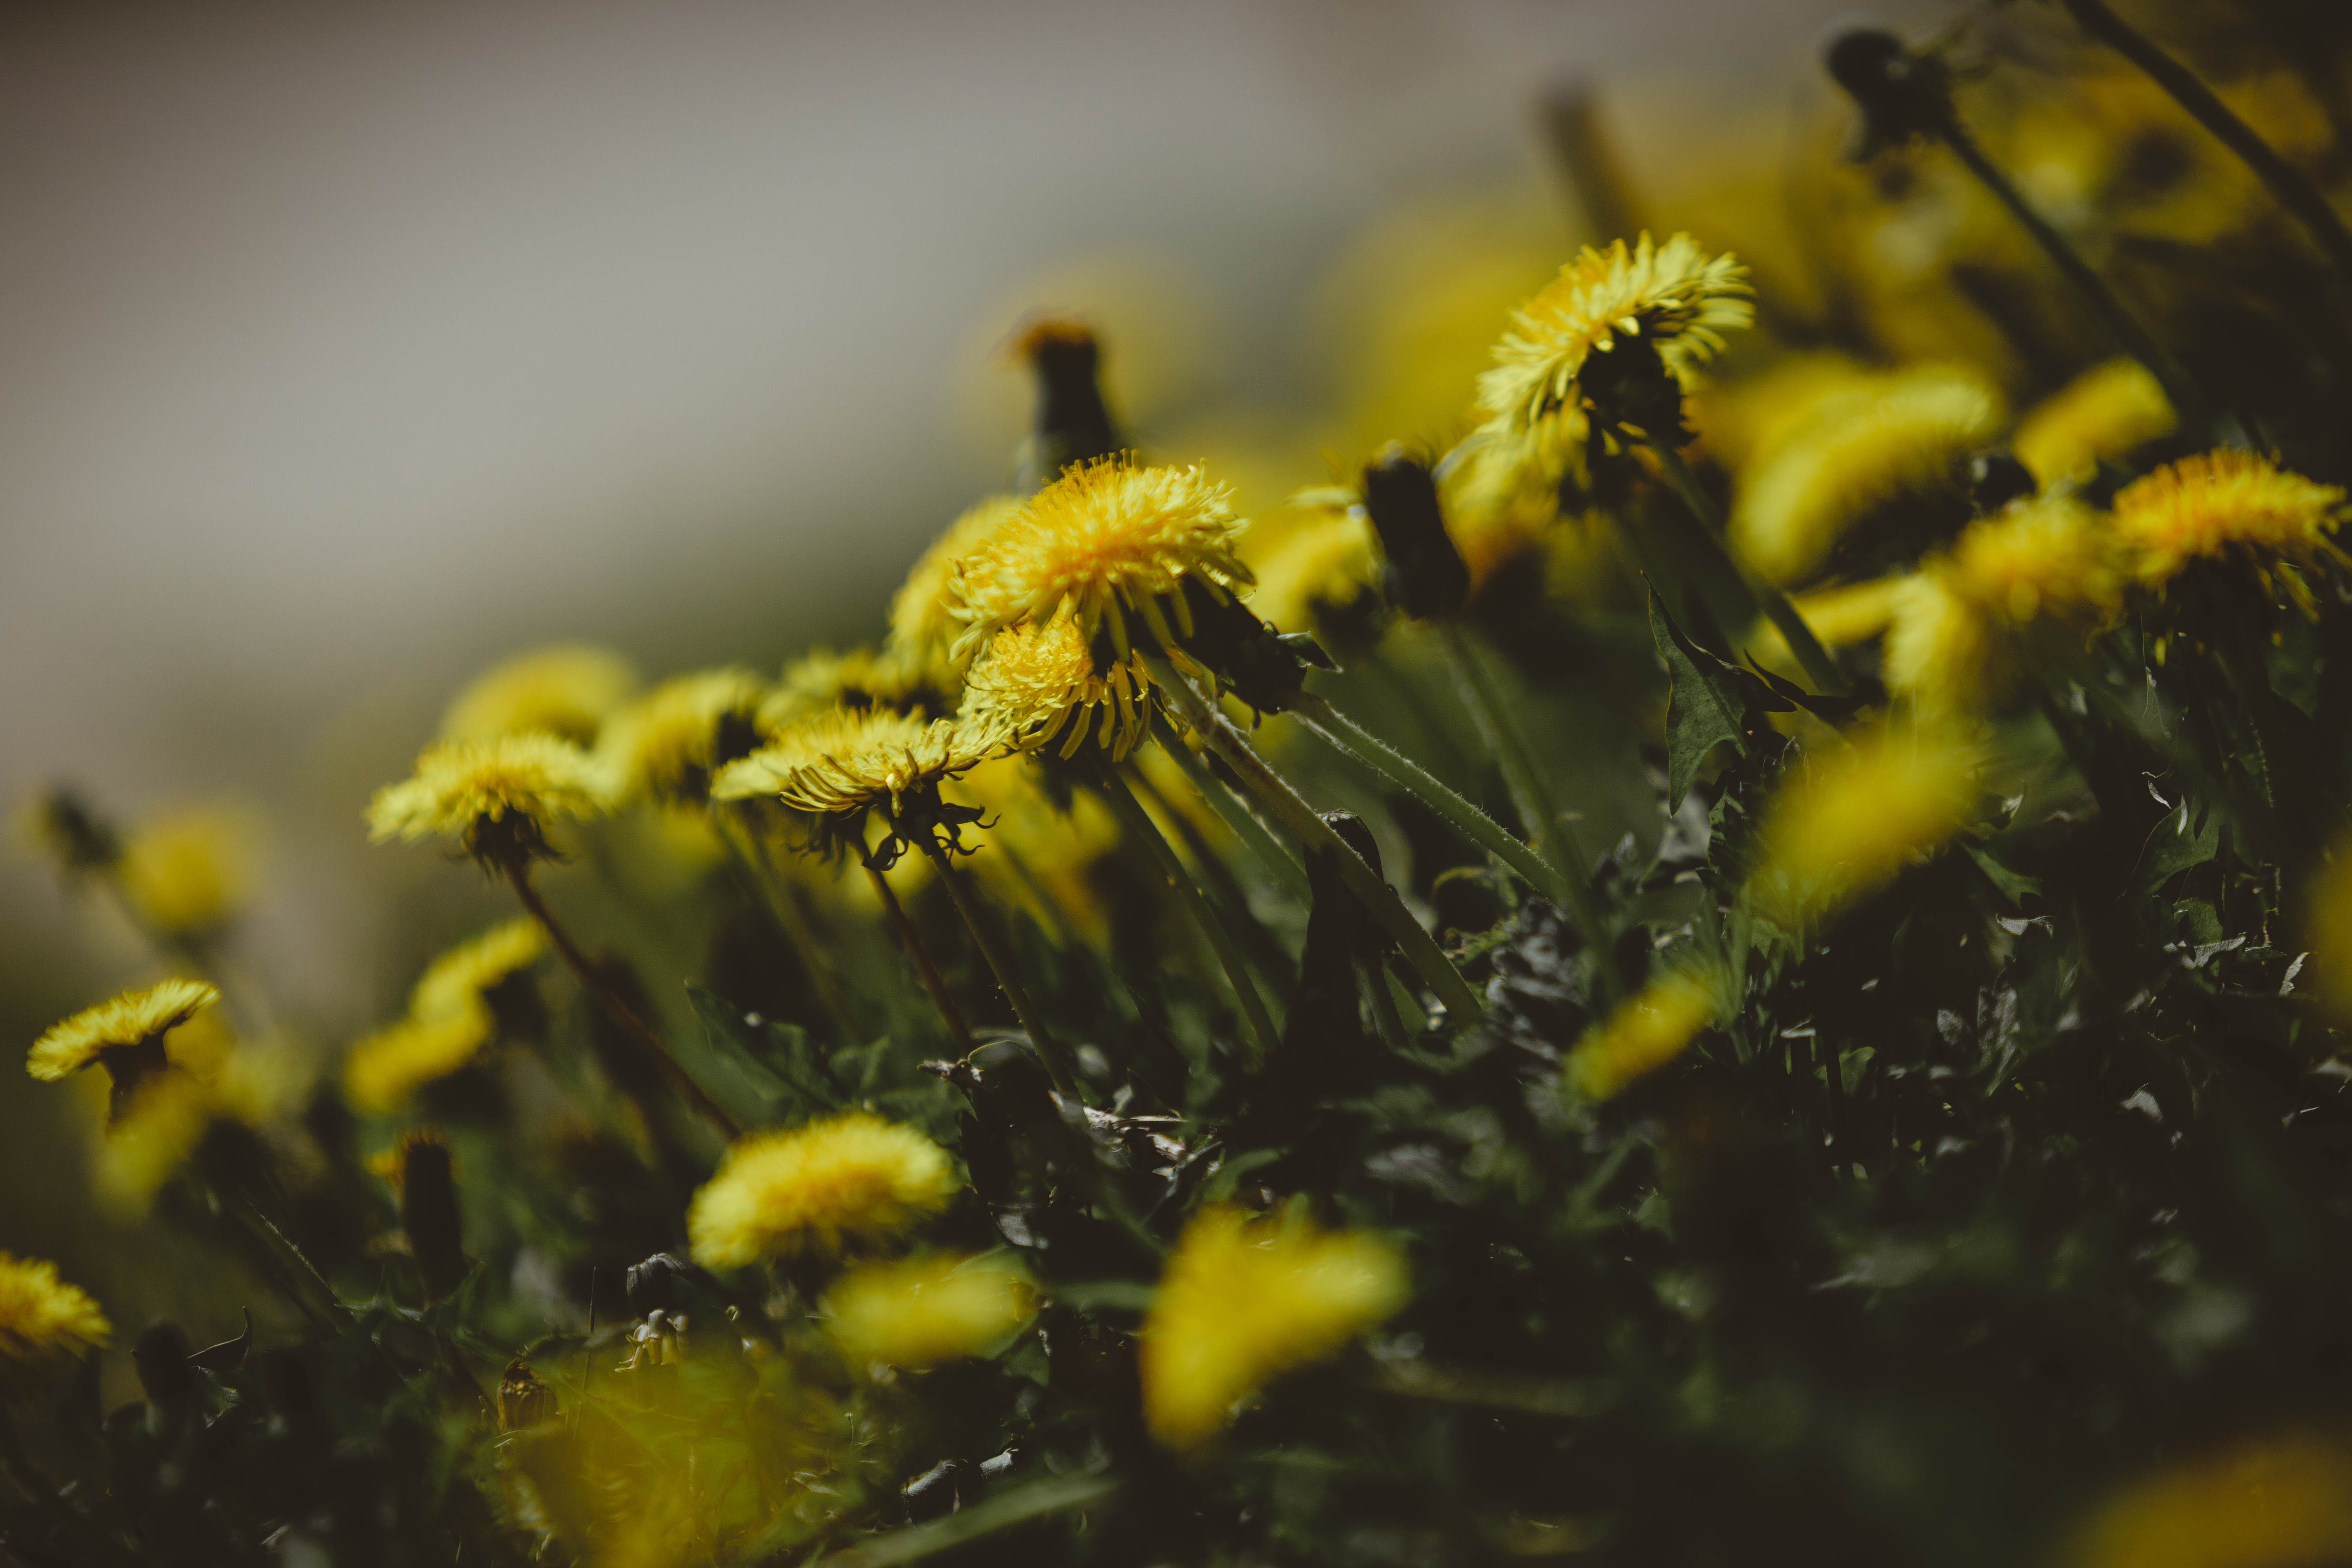 106225 download wallpaper Flowers, Grass, Dandelions, Close-Up screensavers and pictures for free